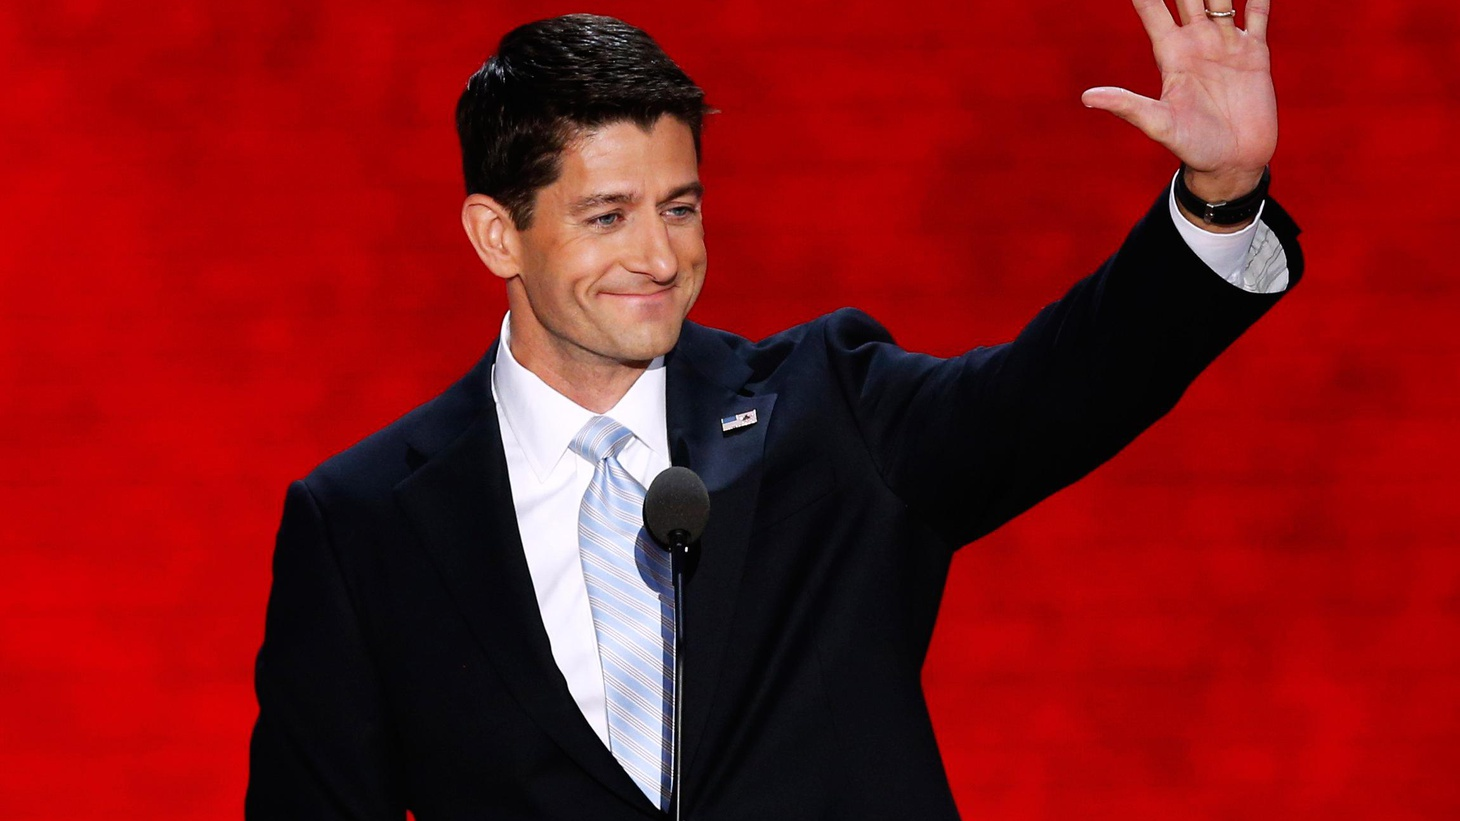 We hear excerpts from Paul Ryan's national coming-out speech and sample a range of opinions. Also, Condoleezza Rice on foreign policy and the appeal to Latinos.